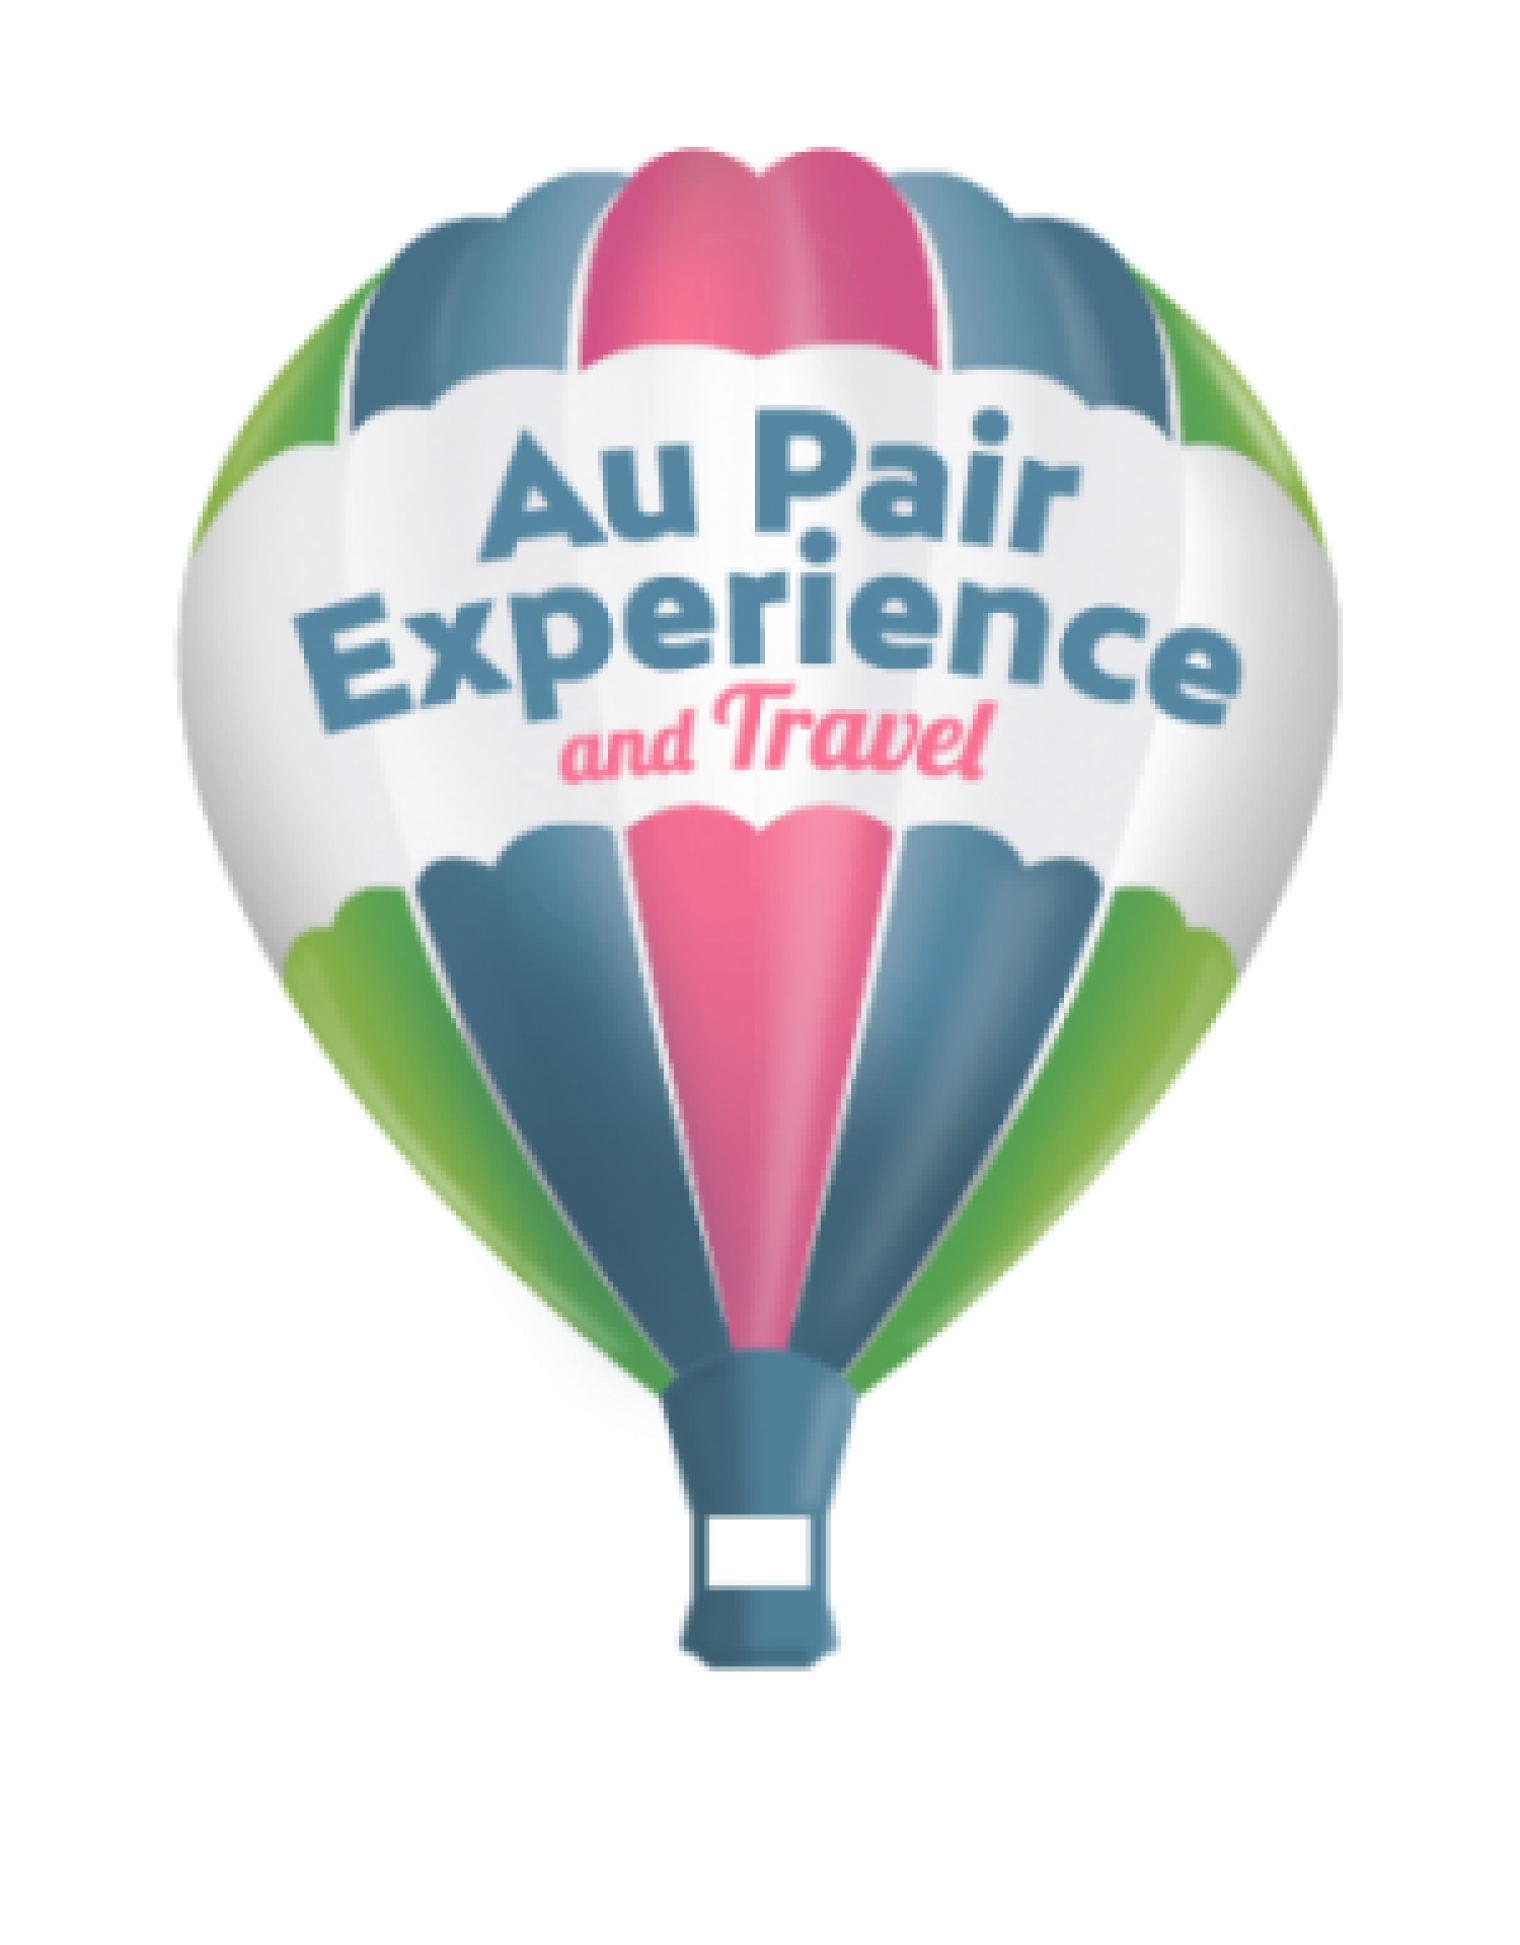 Welcome to our new full non-voting Member Au Pair Experience & Travel, Argentina